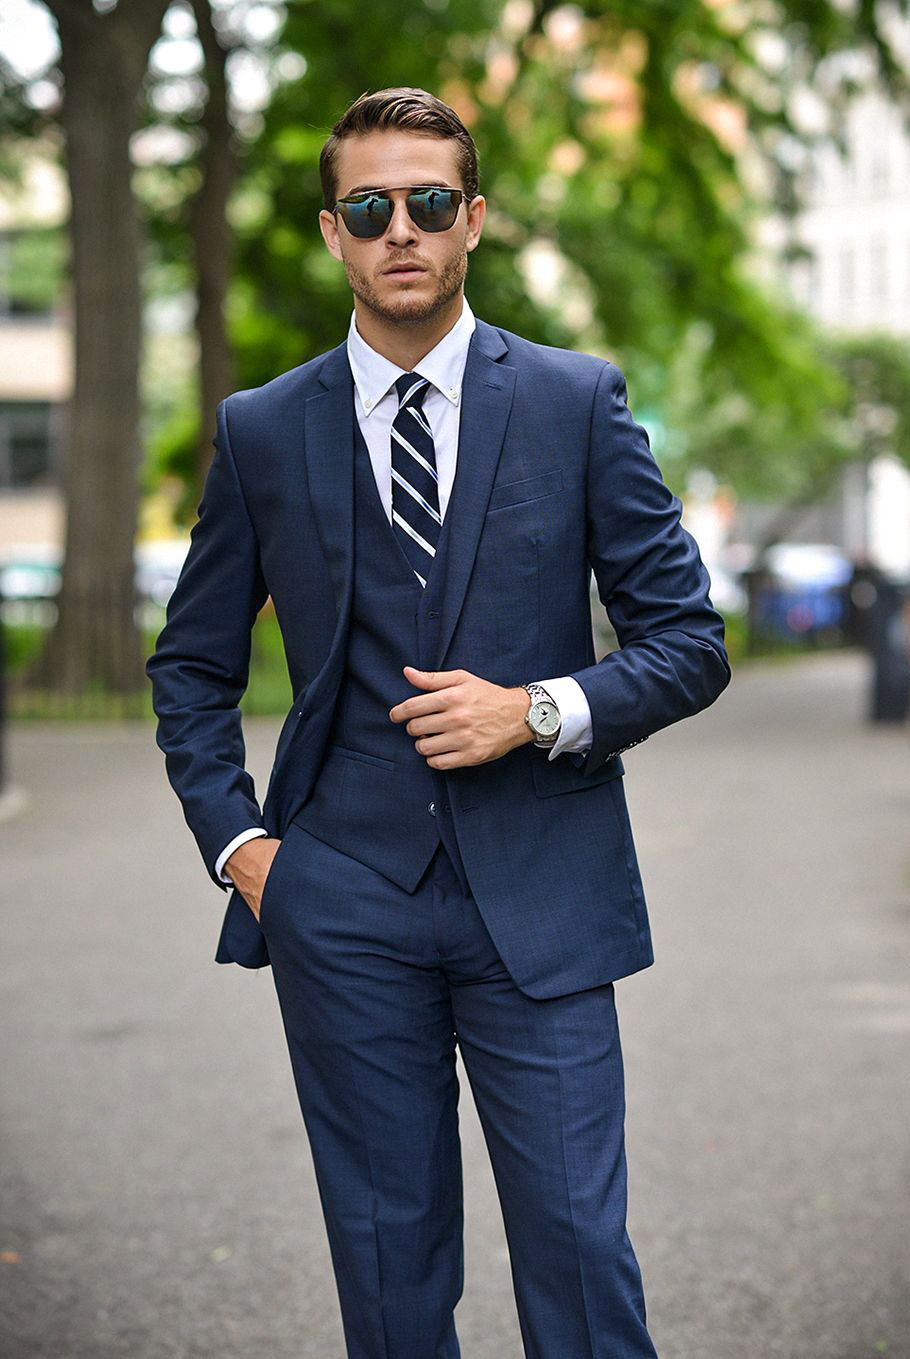 Navy Suit Color Combinations With Shirt and Tie - Suits Expert